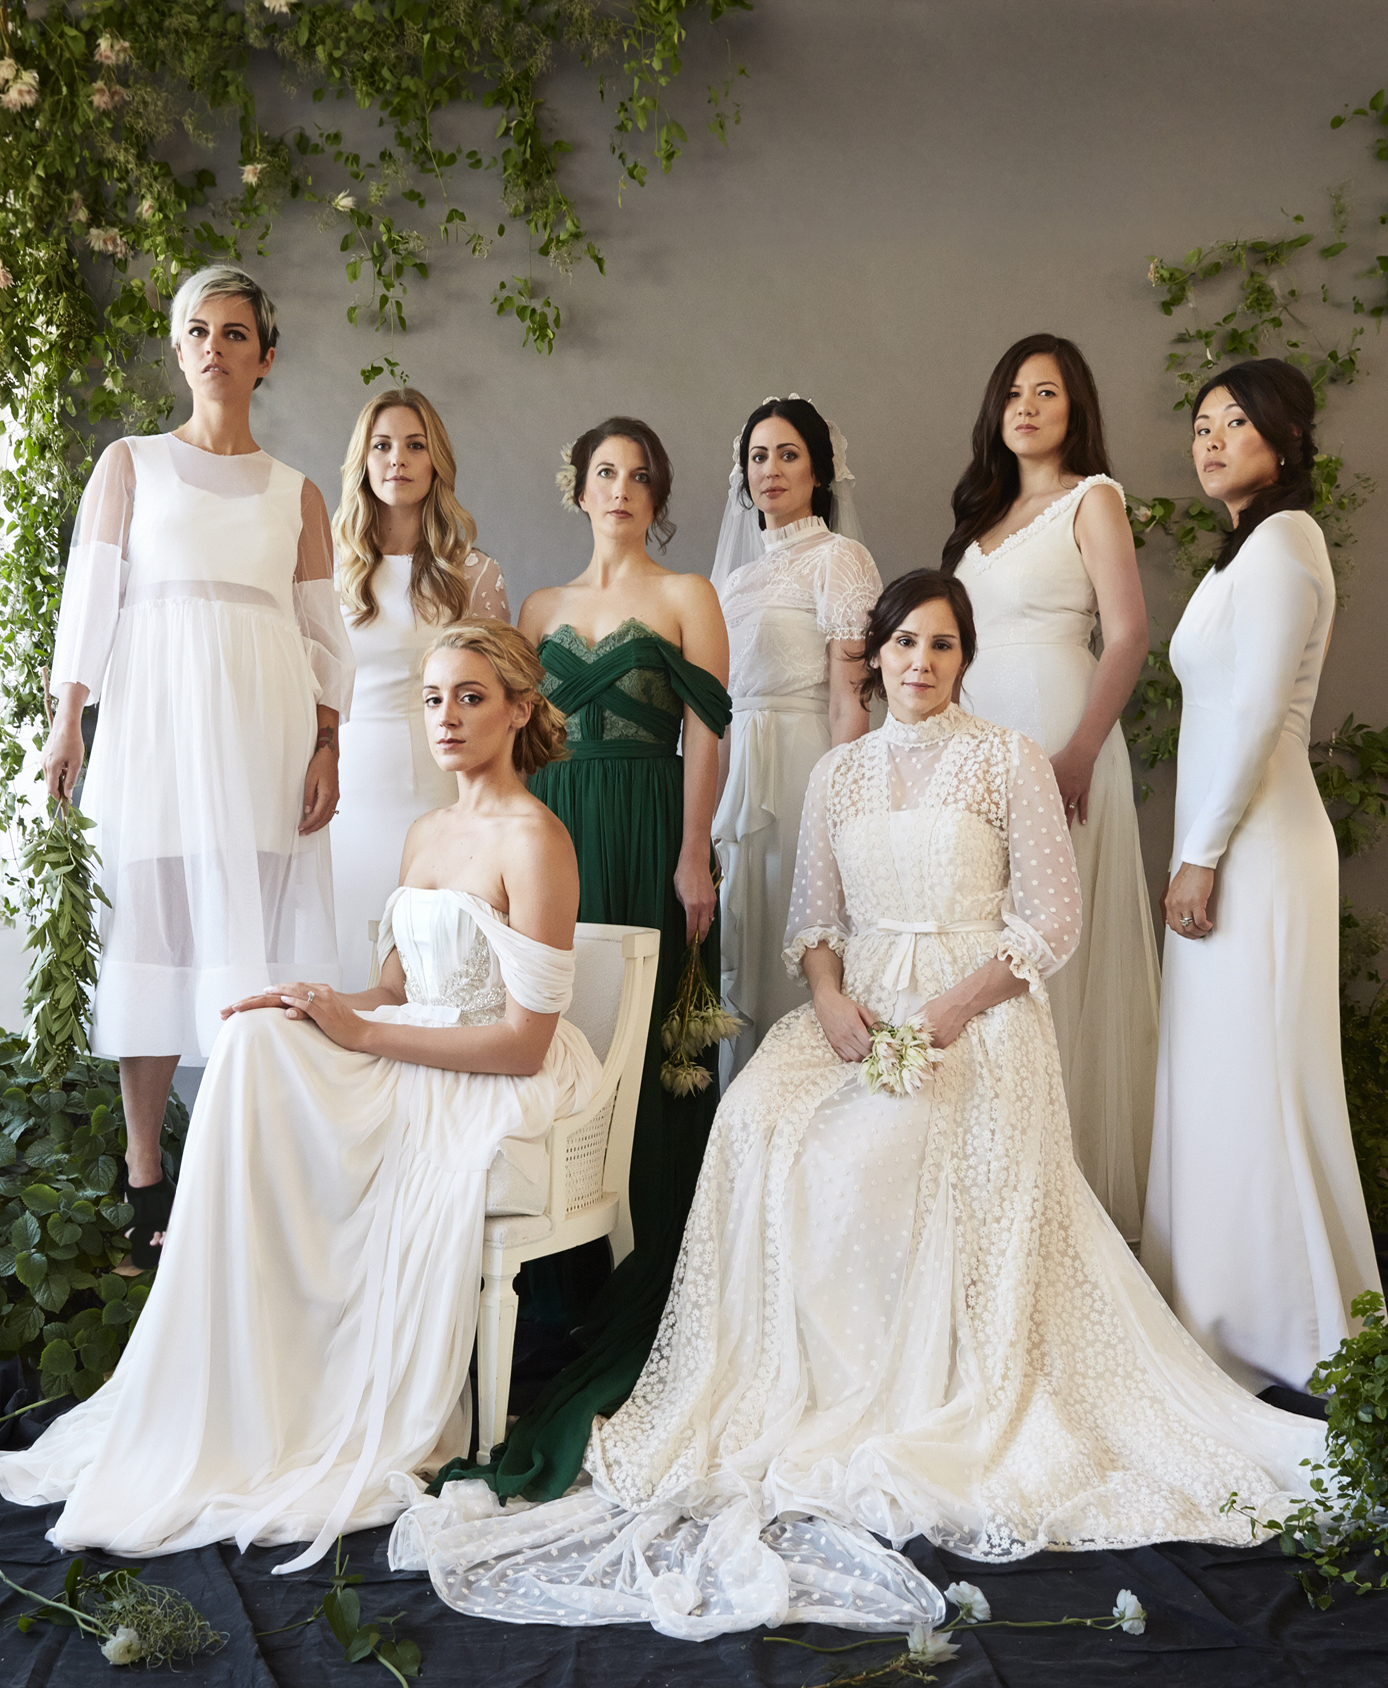 REAL BRIDES: Molly, Lauren, Beth, Rachel, Glorily, Alison, Kim and Jennifer / Image by Anjali Pinto, Hair by Debra Petrielli, Makeup by Joanna Bastermajian